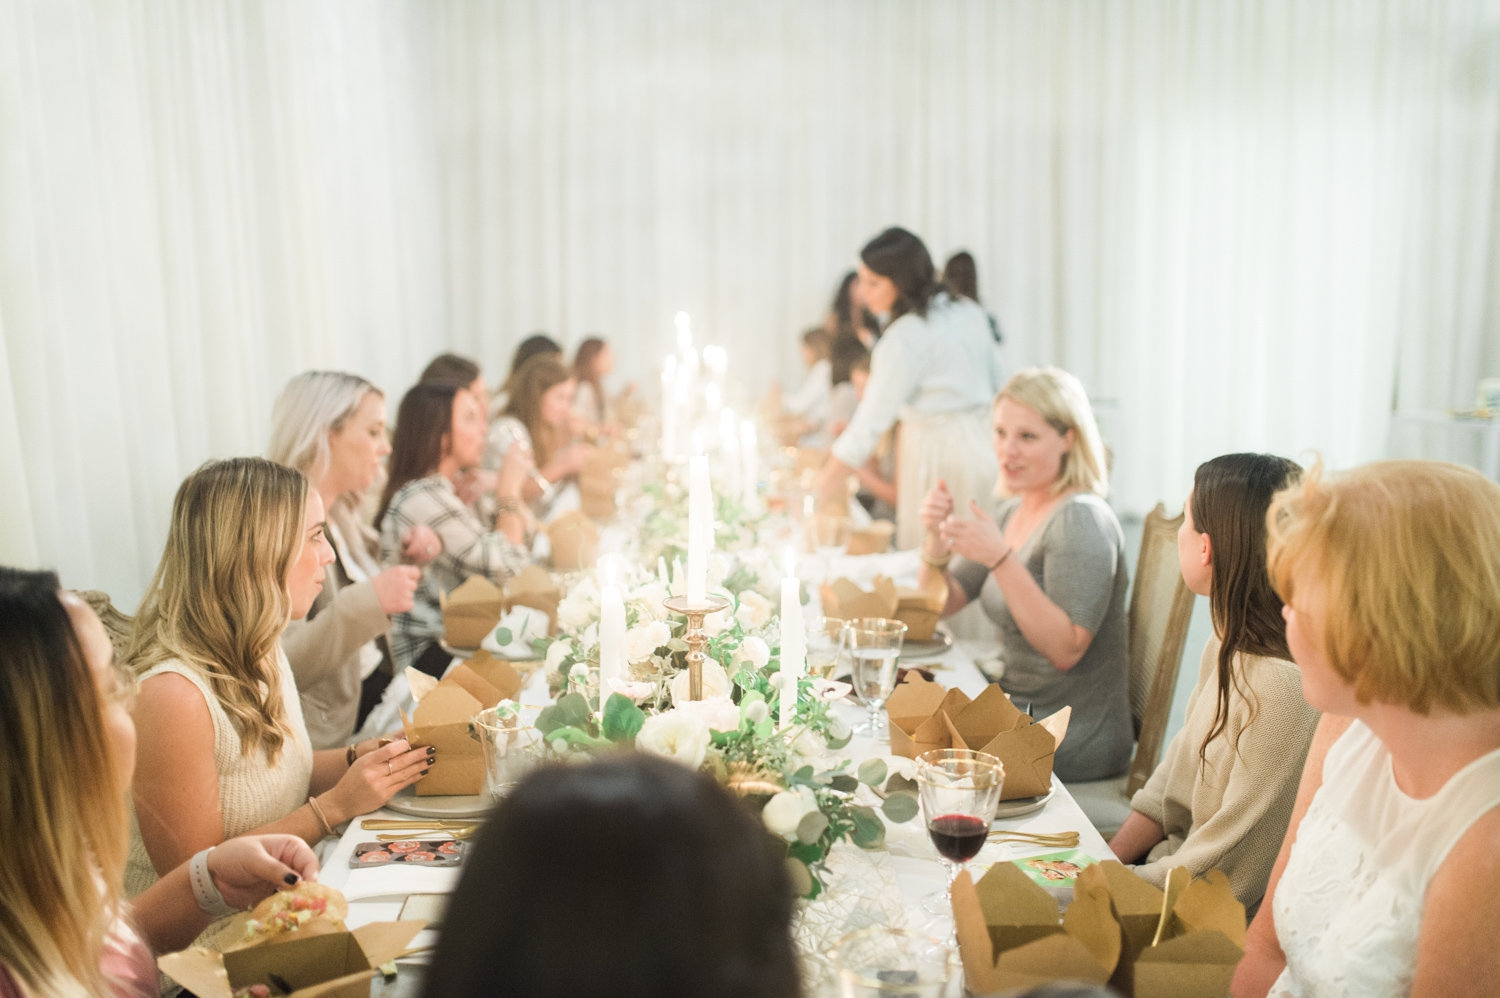 LVL Weddings and Events LVL Academy Day One